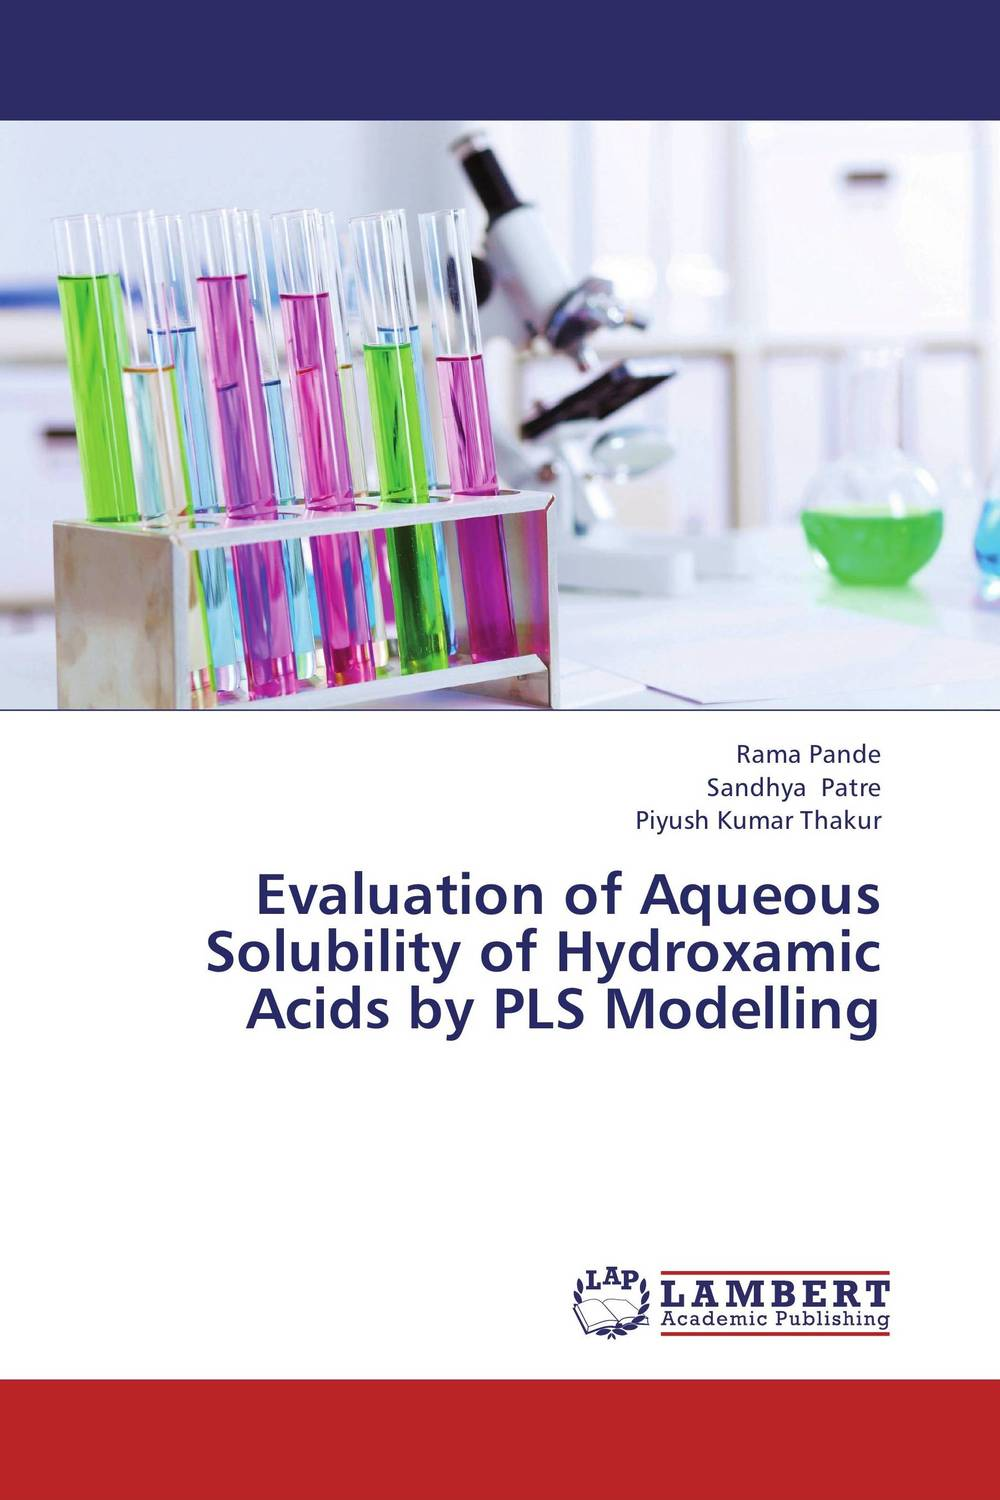 Evaluation of Aqueous Solubility of Hydroxamic Acids by PLS Modelling the role of evaluation as a mechanism for advancing principal practice